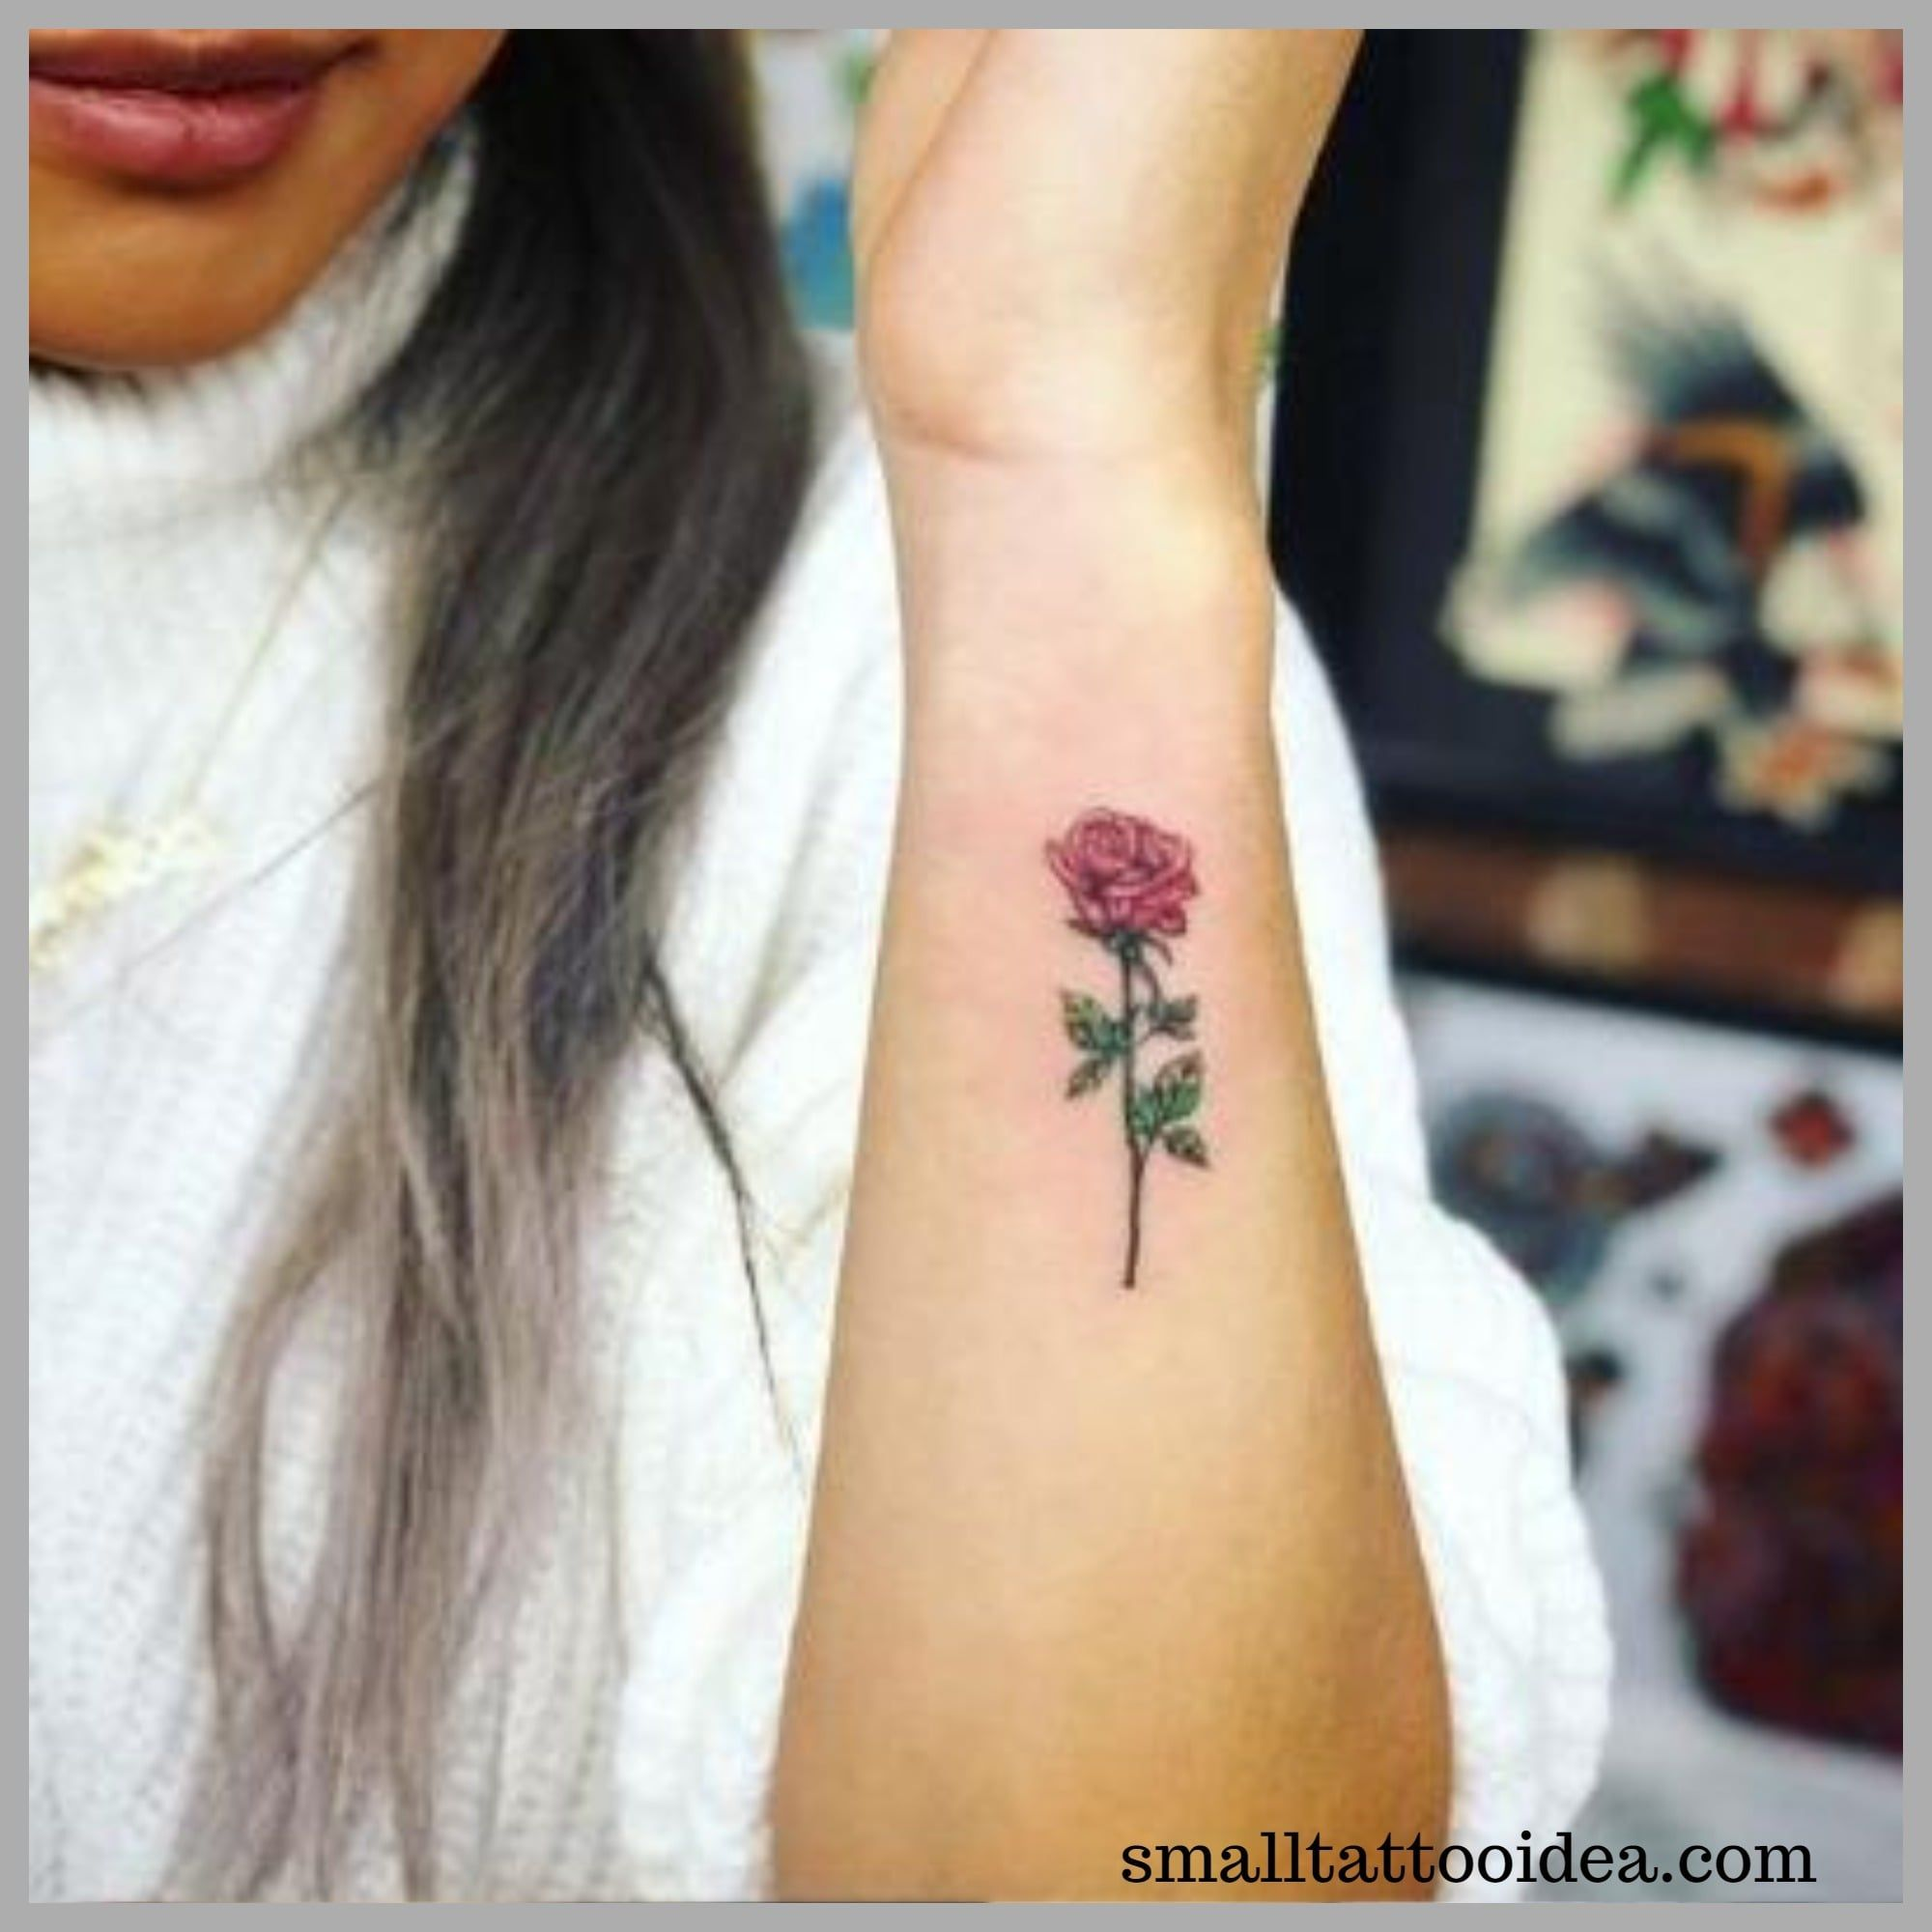 35 Small Red Rose Tattoo Ideas For Girls Tattoo Small Tattoos Rose Tattoos Tattoos